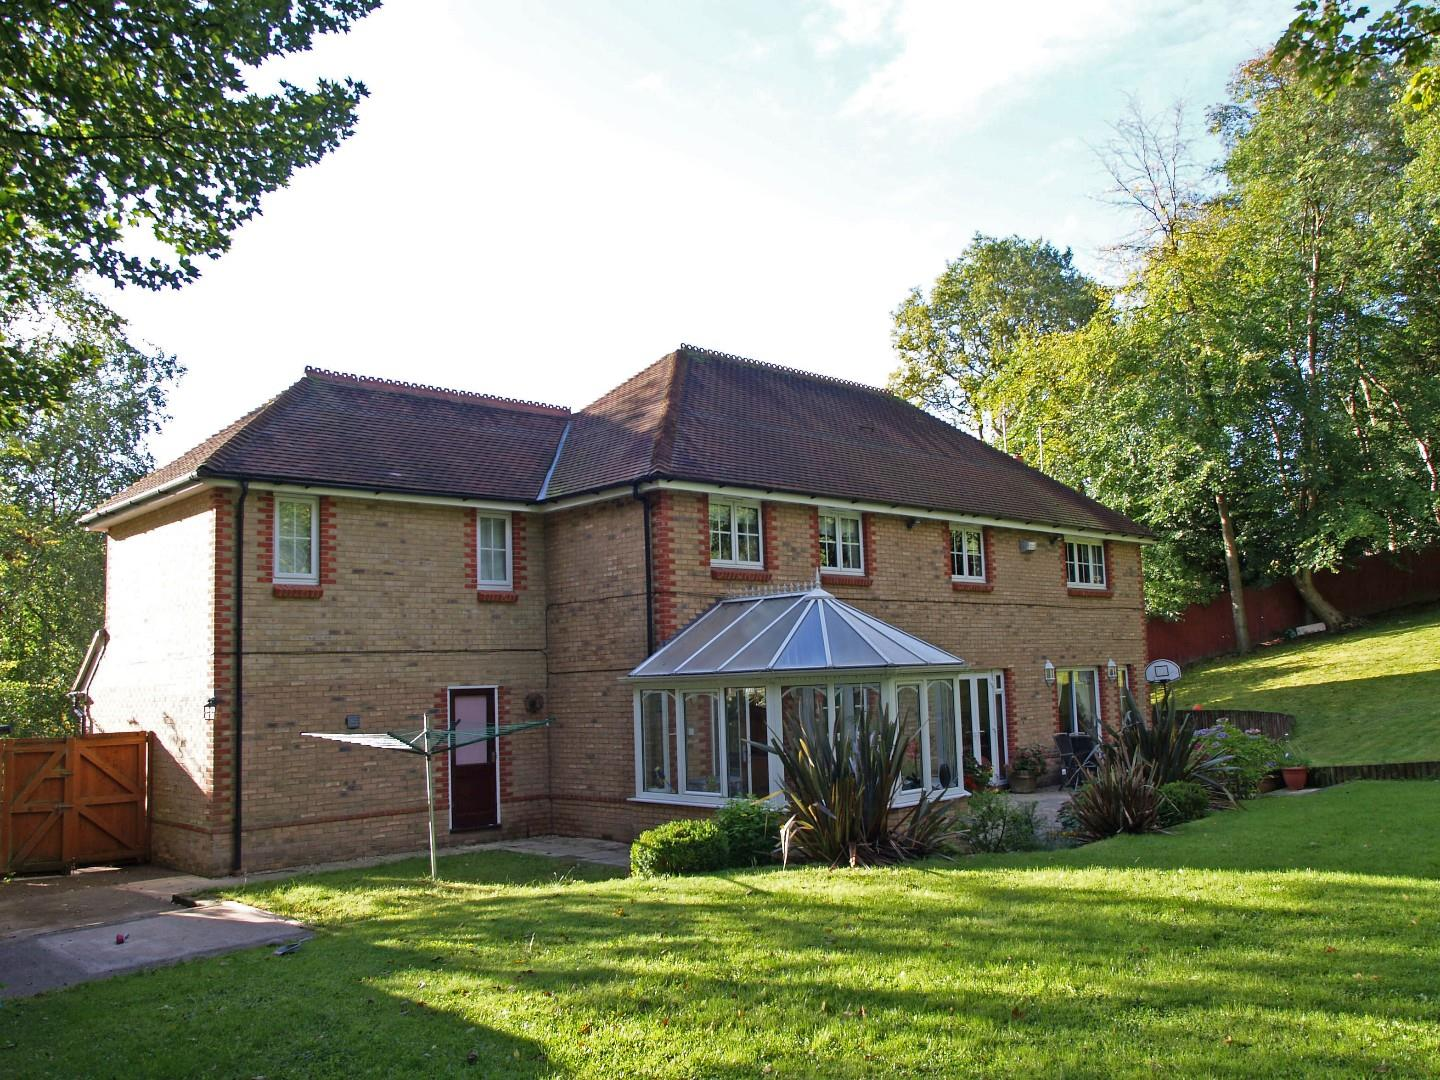 6 The Badgers, Mearse Lane, Barnt Green, B45 8QR